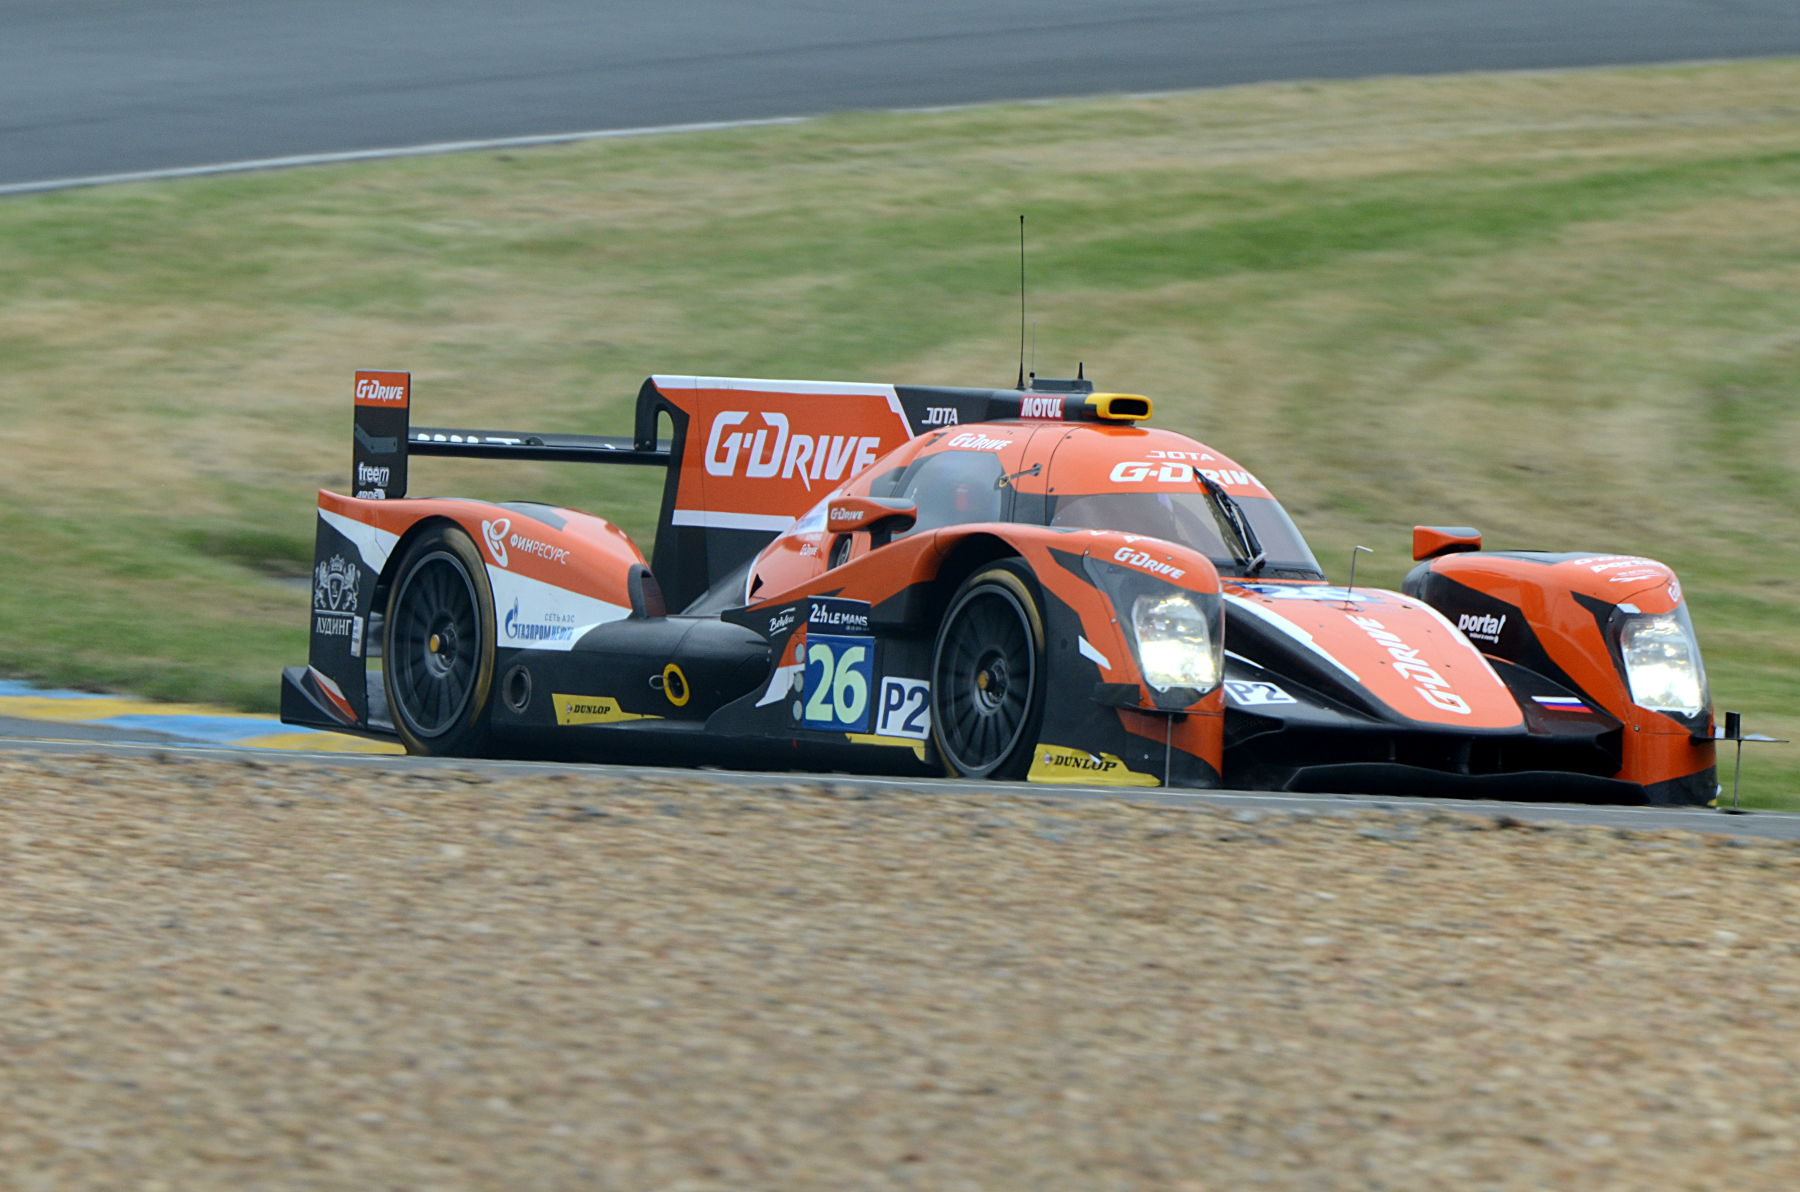 2016 Oreca 05 Nissan Team G-Drive Racing